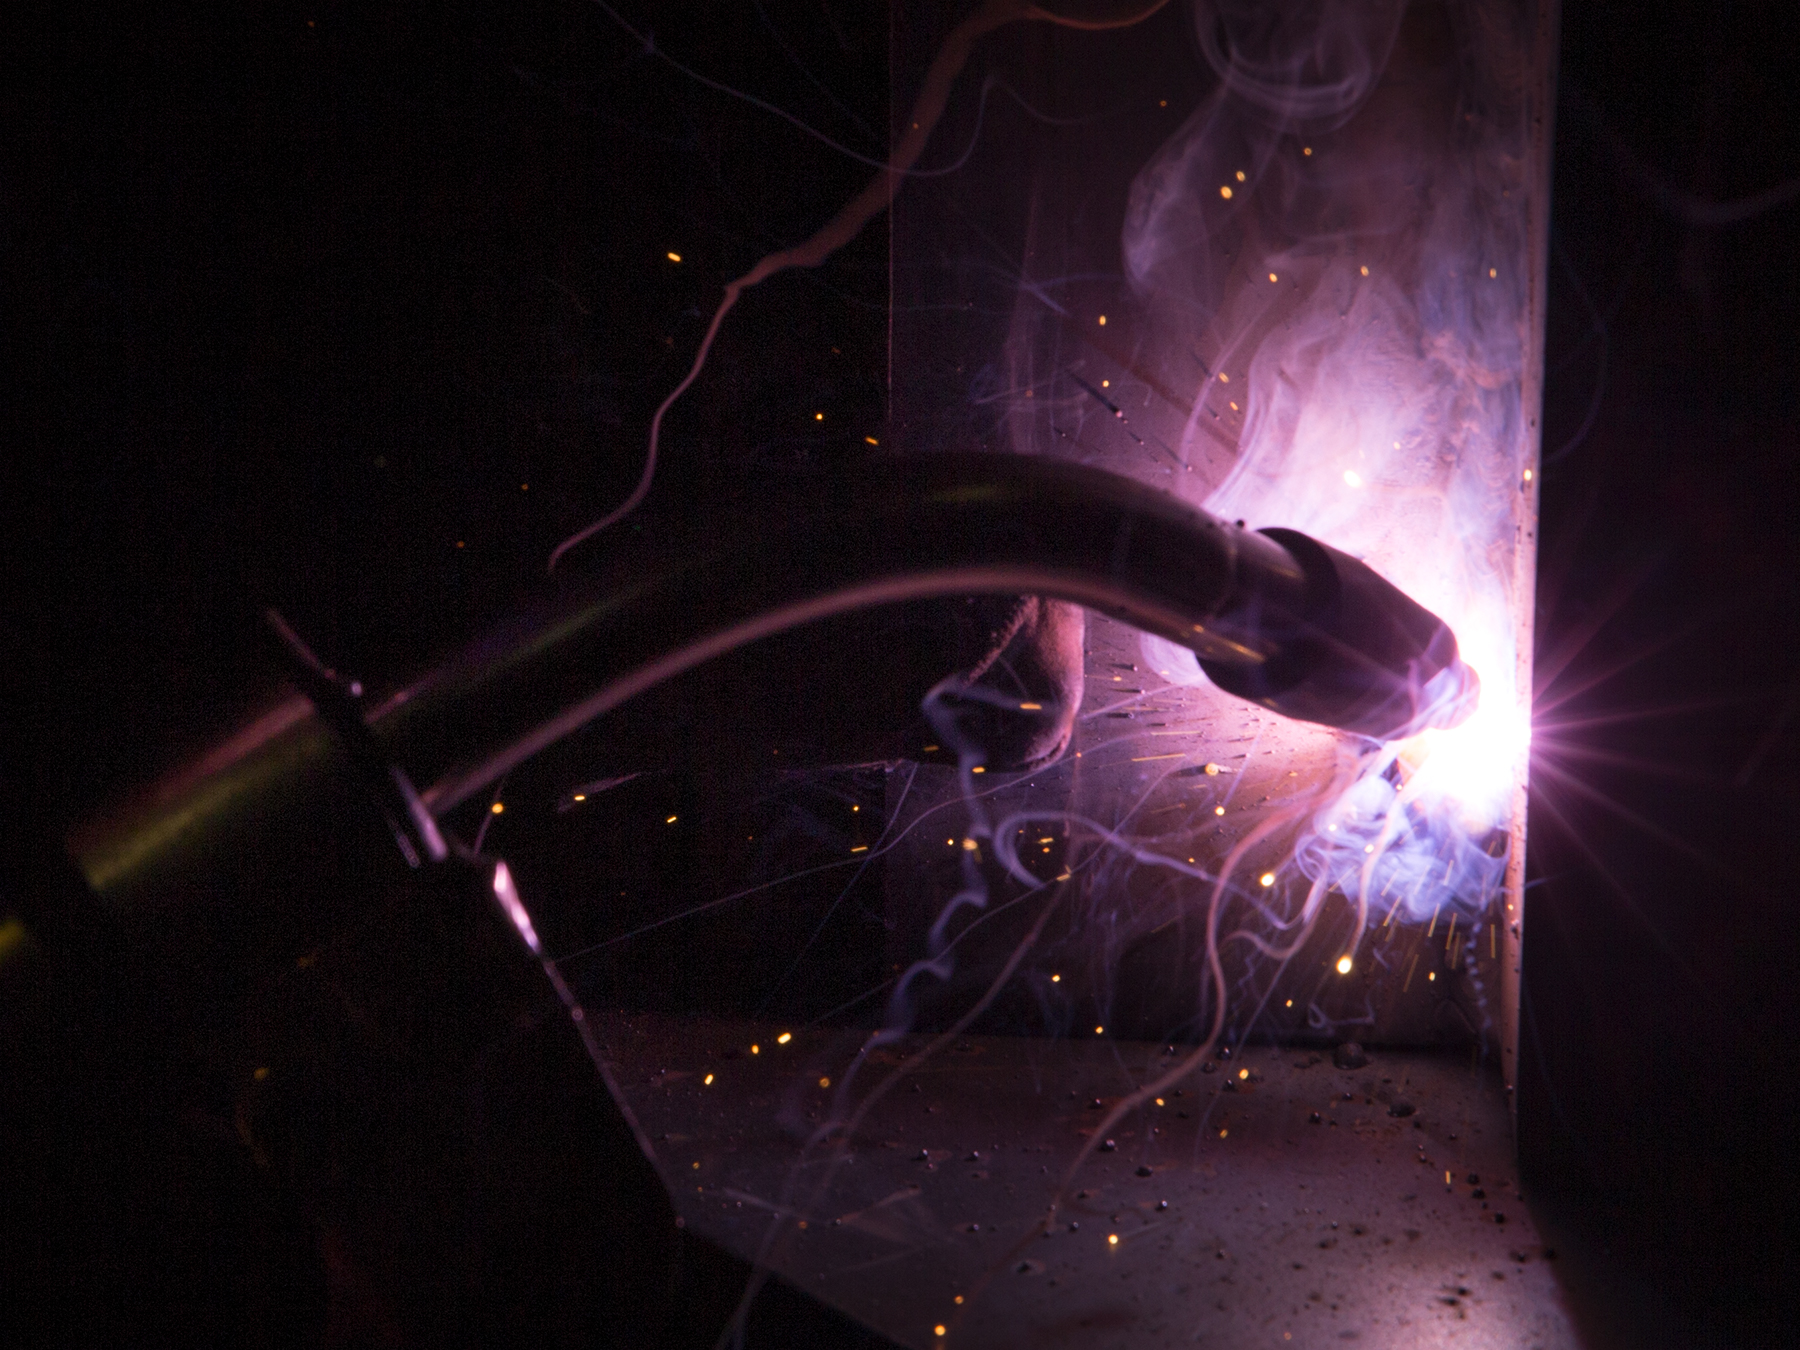 Close up photo on the welding flame creating a purple light